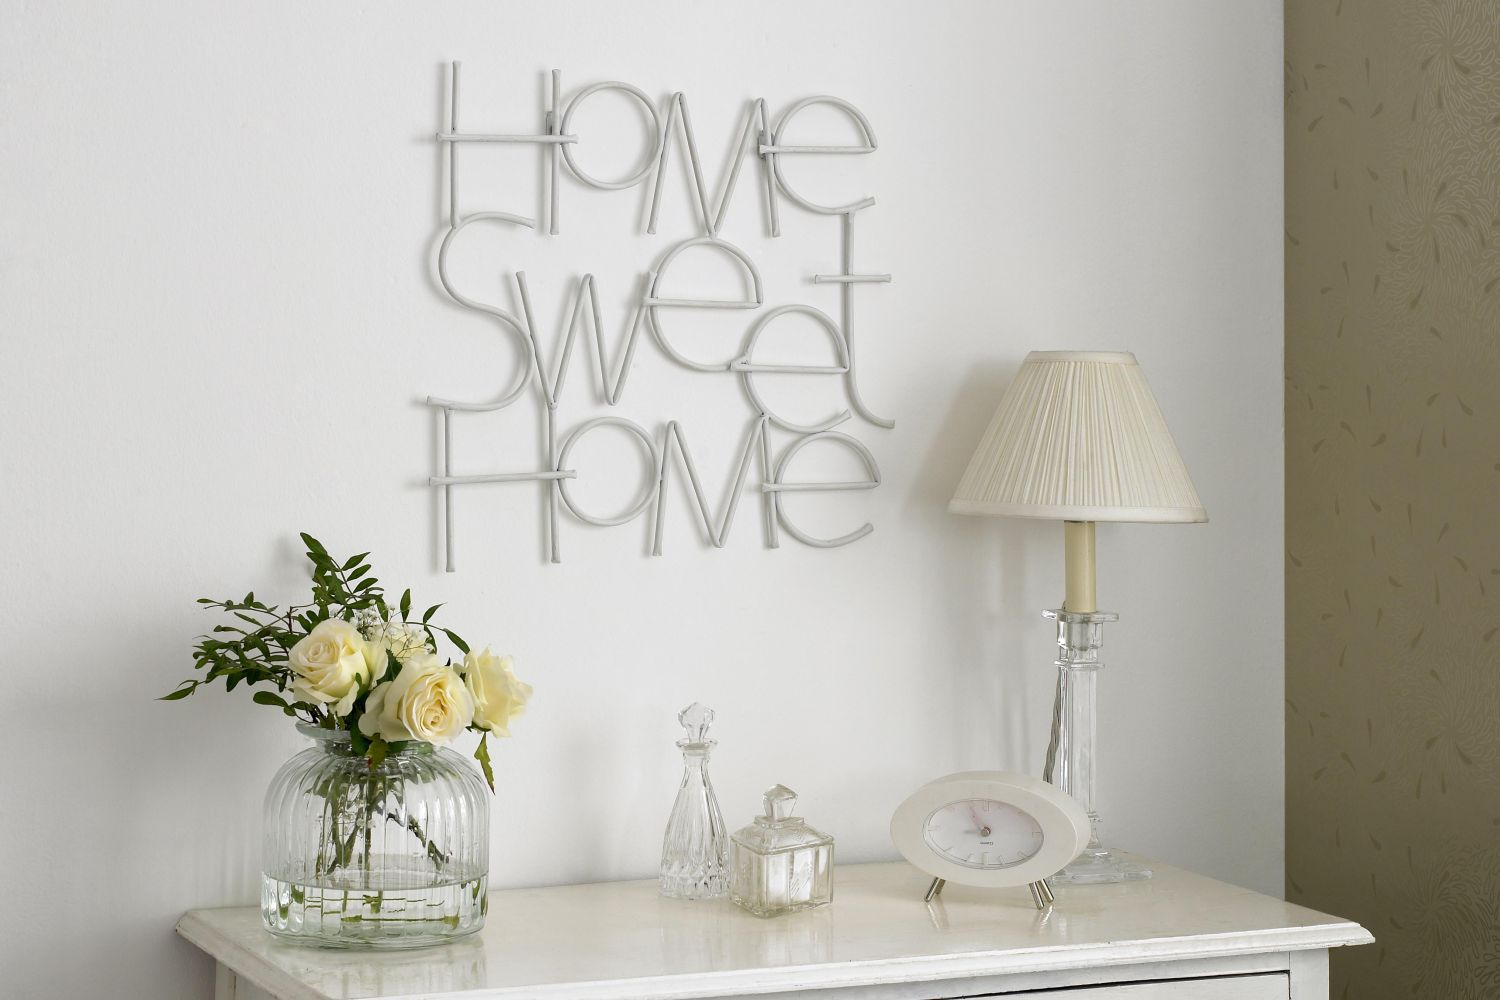 Sweet home wall art